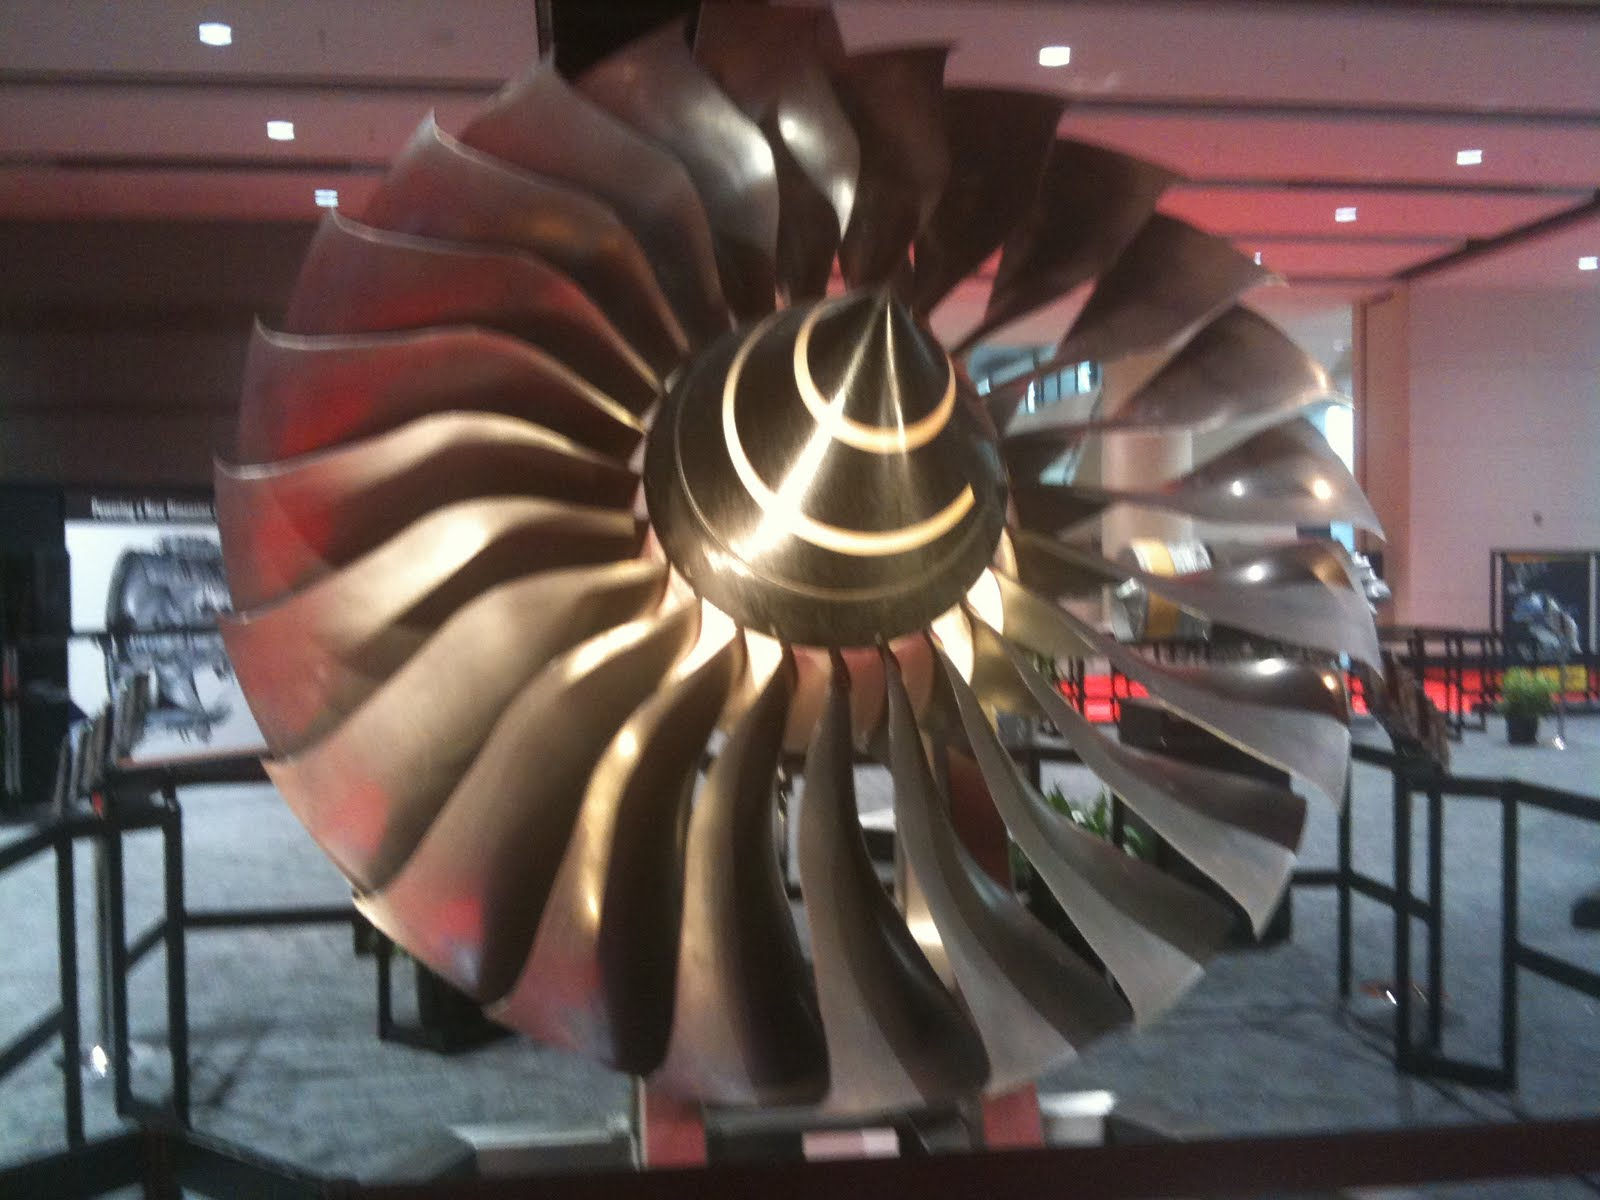 ns and Electrons Rolls Royce Fan System for a Turbine Engine